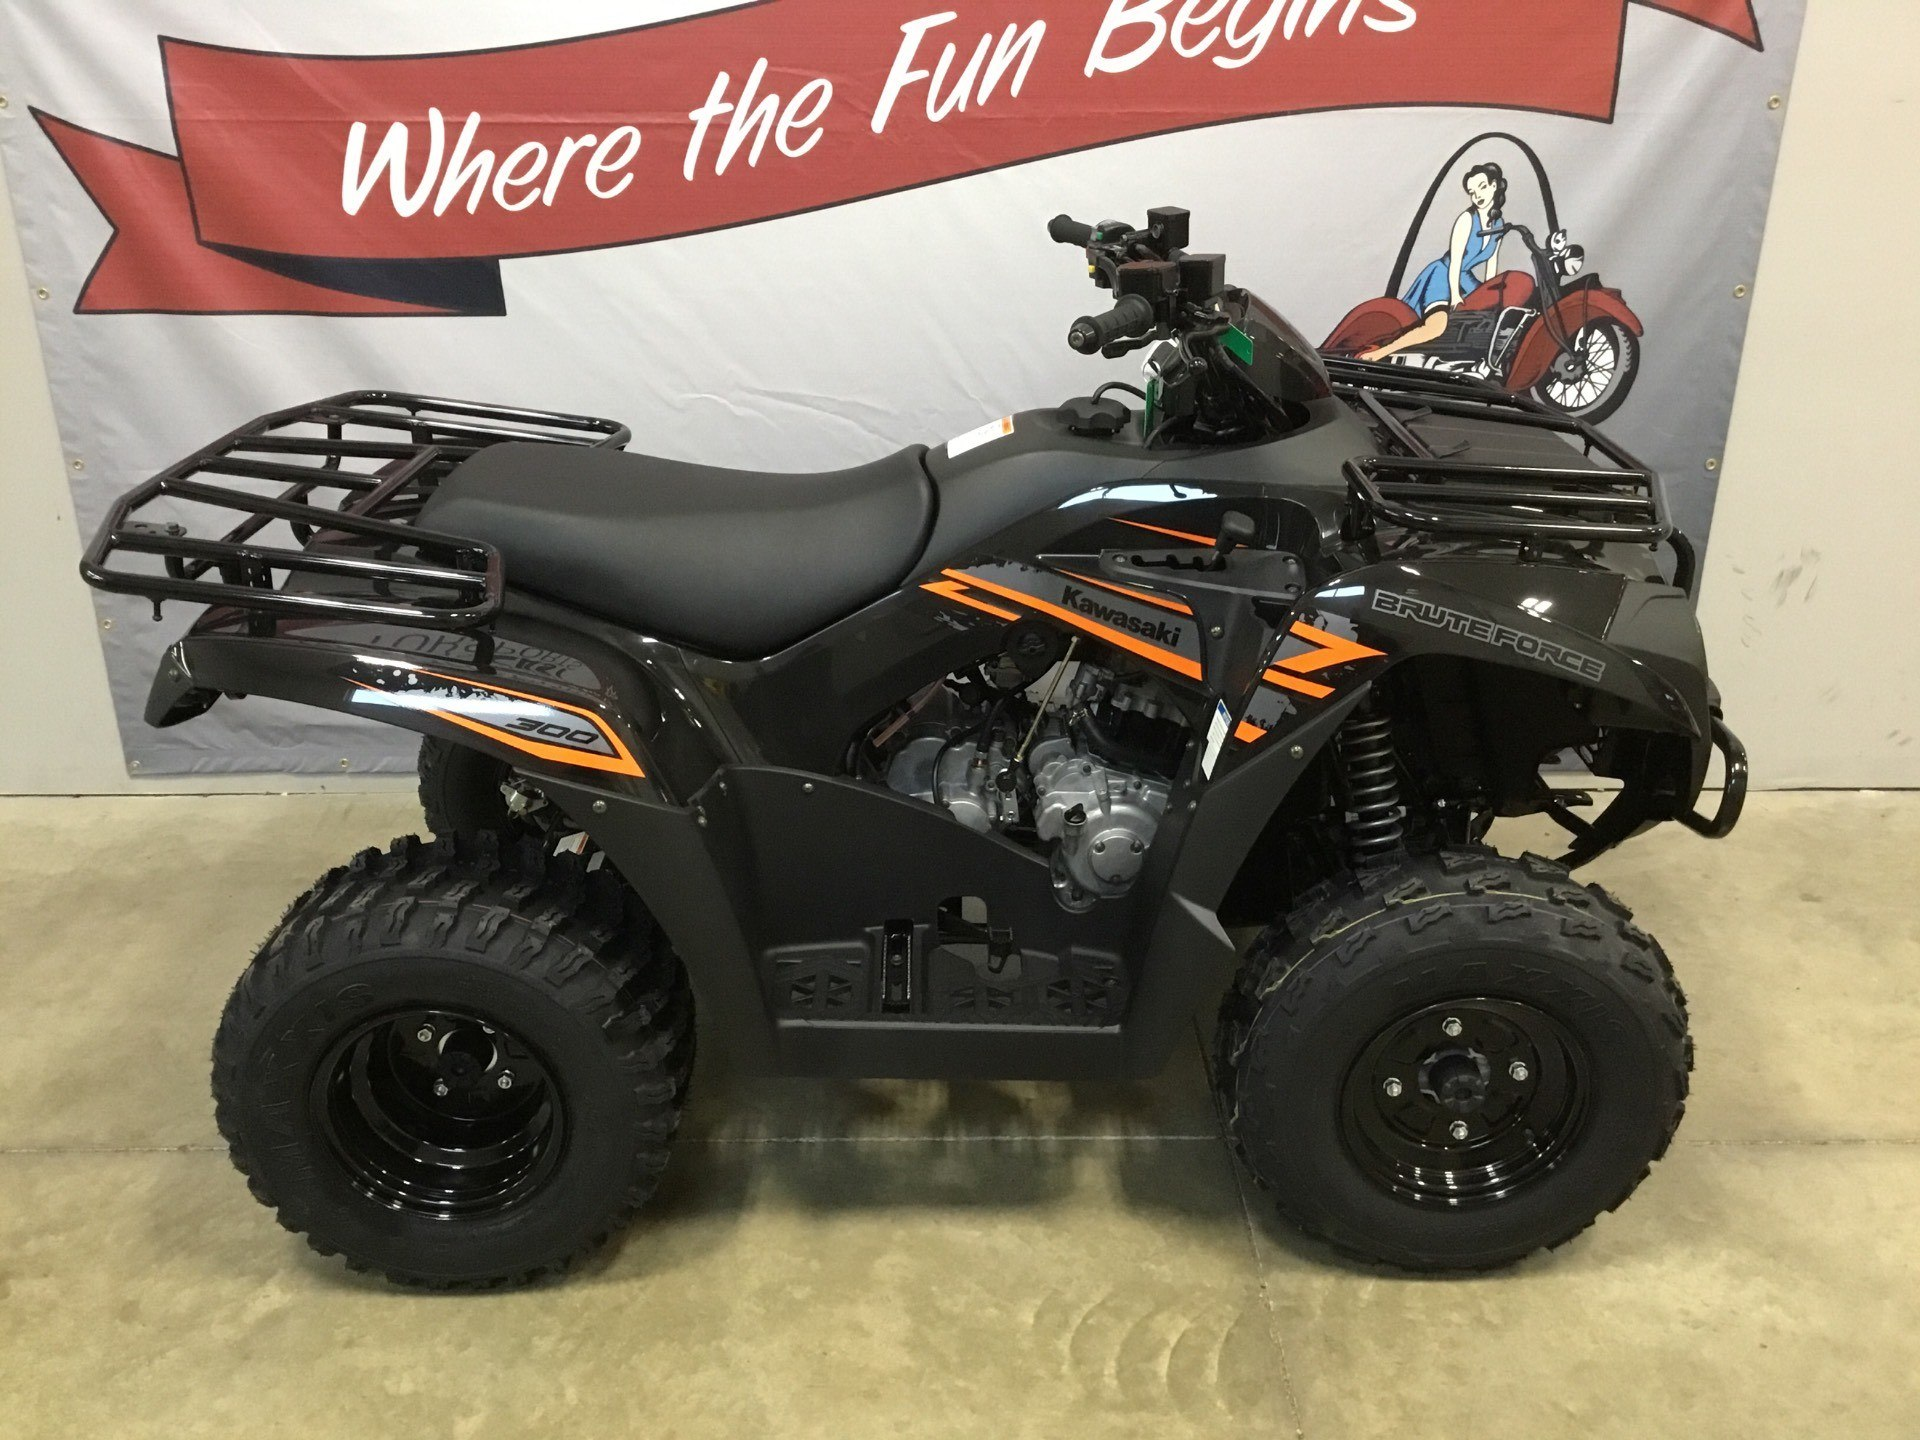 2018 Kawasaki Brute Force 300 in O Fallon, Illinois - Photo 6